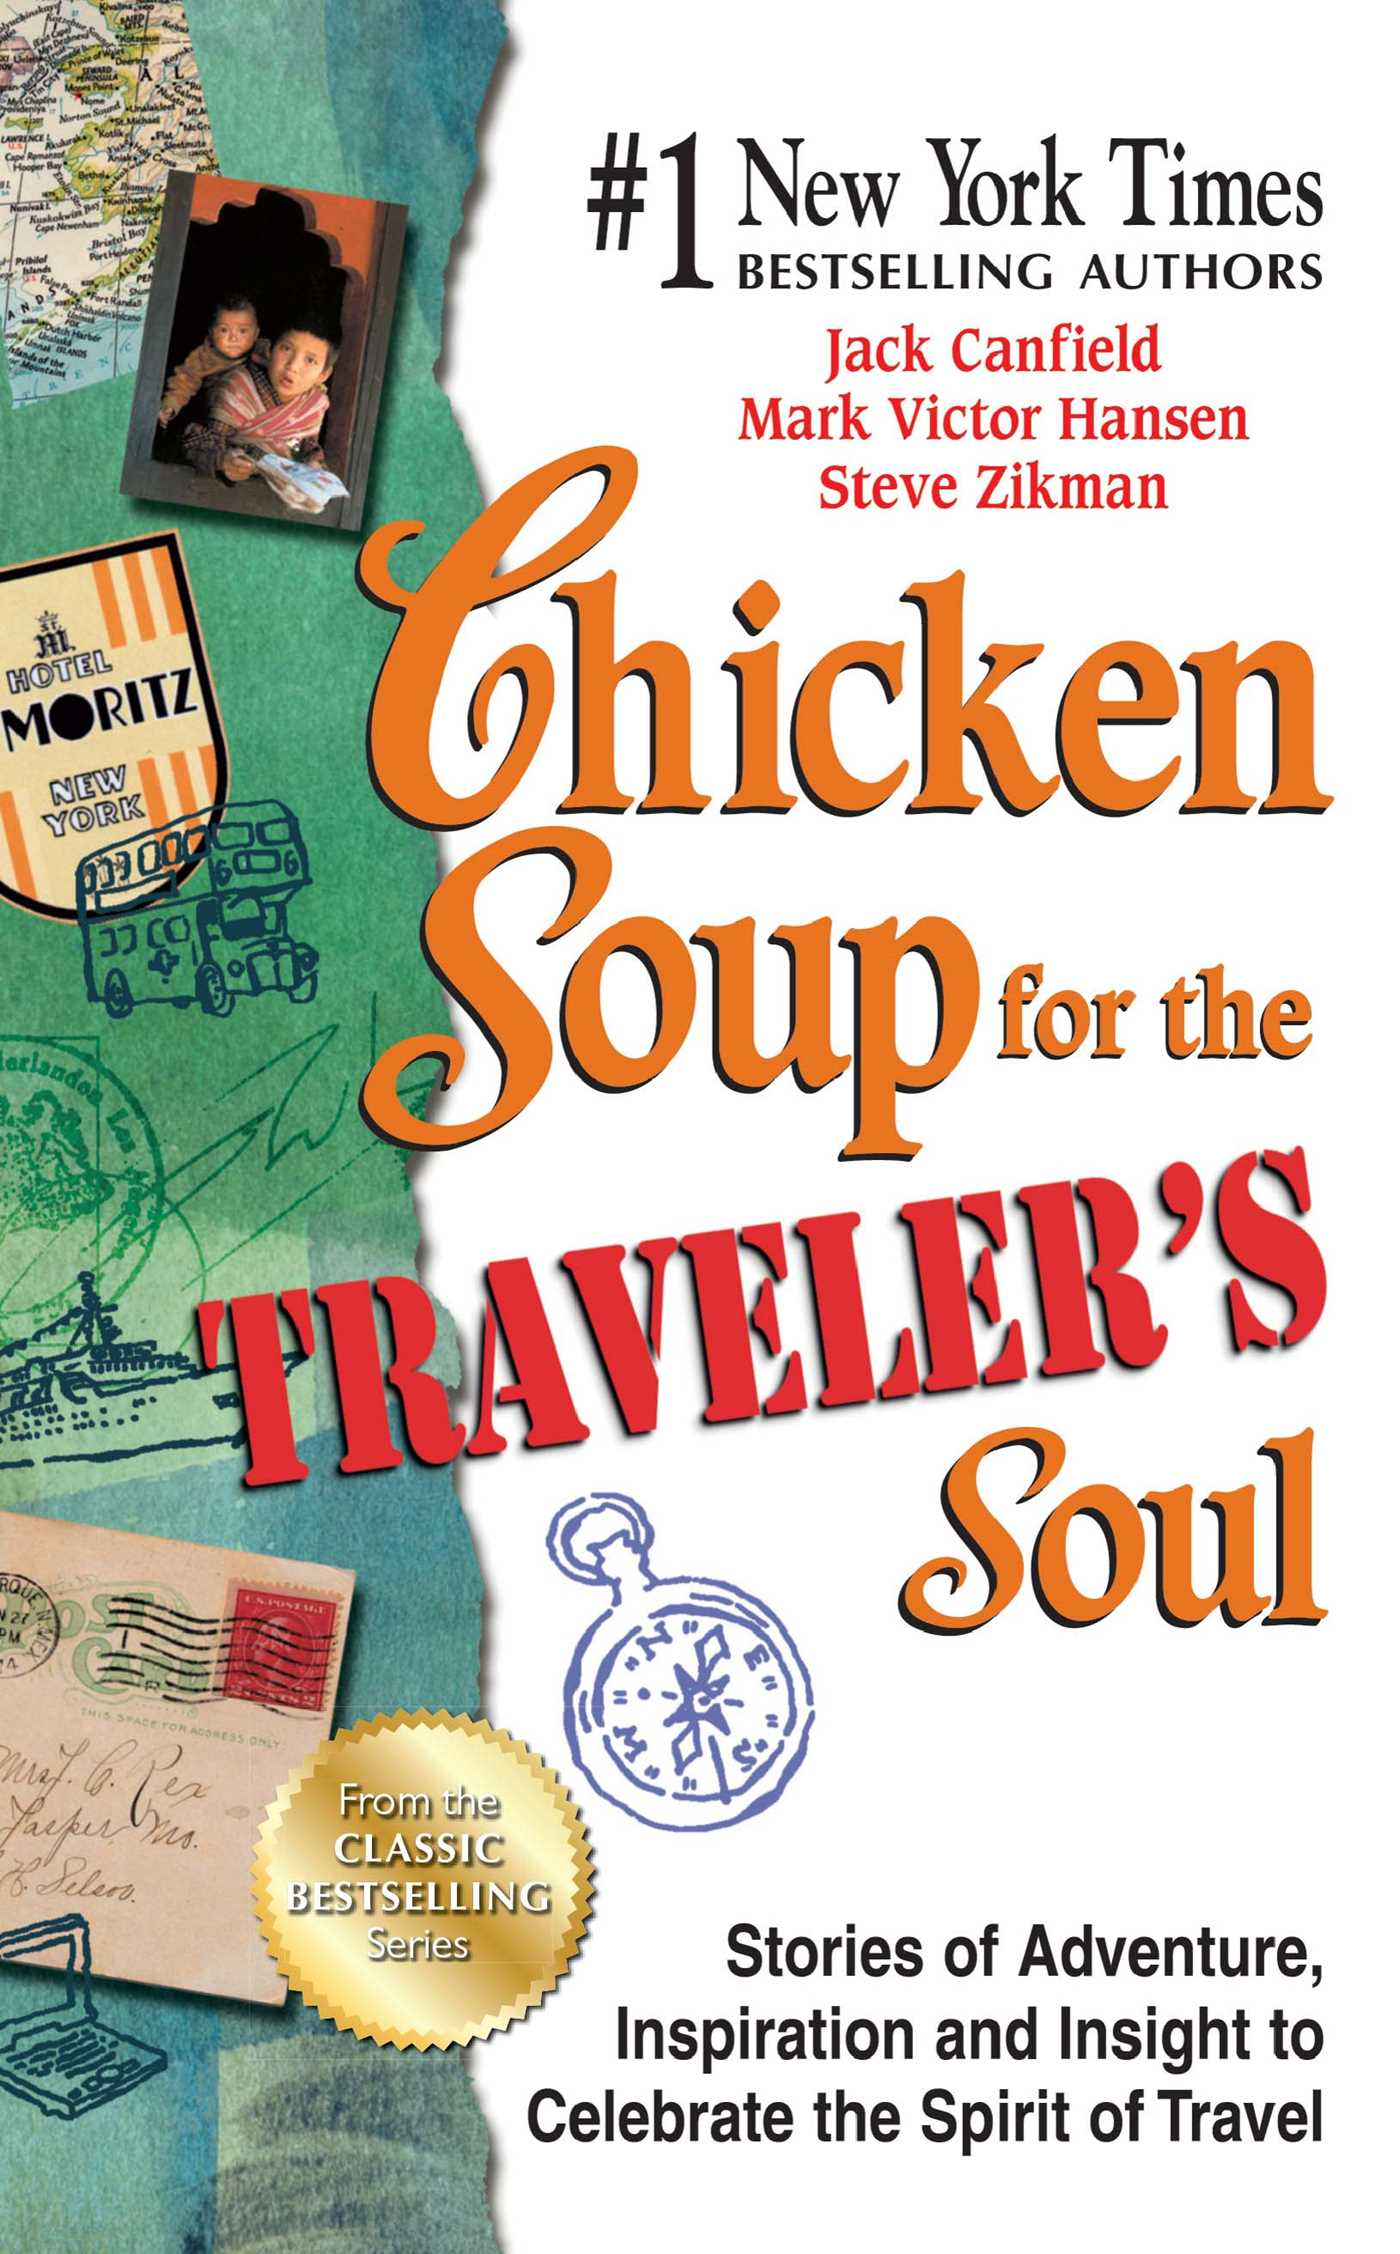 Chicken soup for the travelers soul 9781623611057 hr